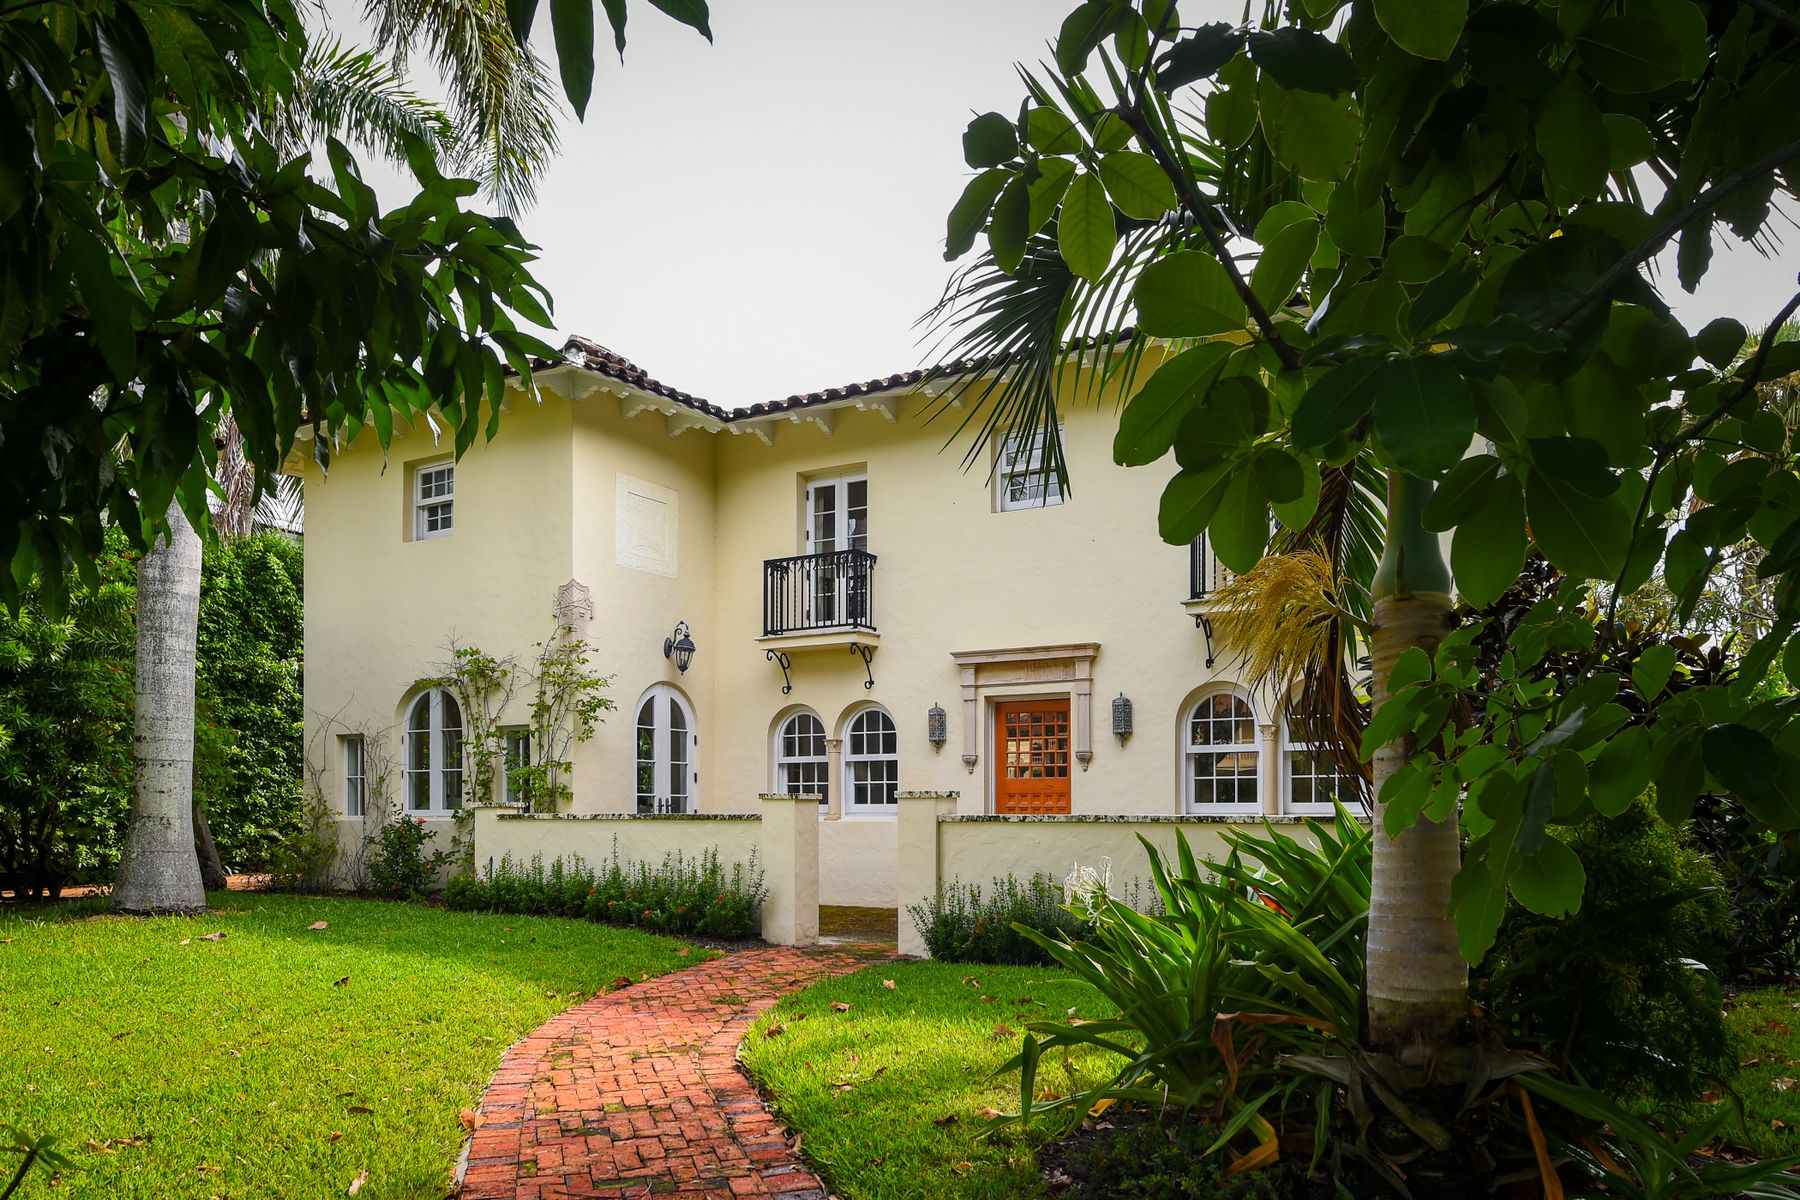 Single Family Homes for Sale at Clarke Avenue Mediterranean 156 Clarke Ave Palm Beach, Florida 33480 United States